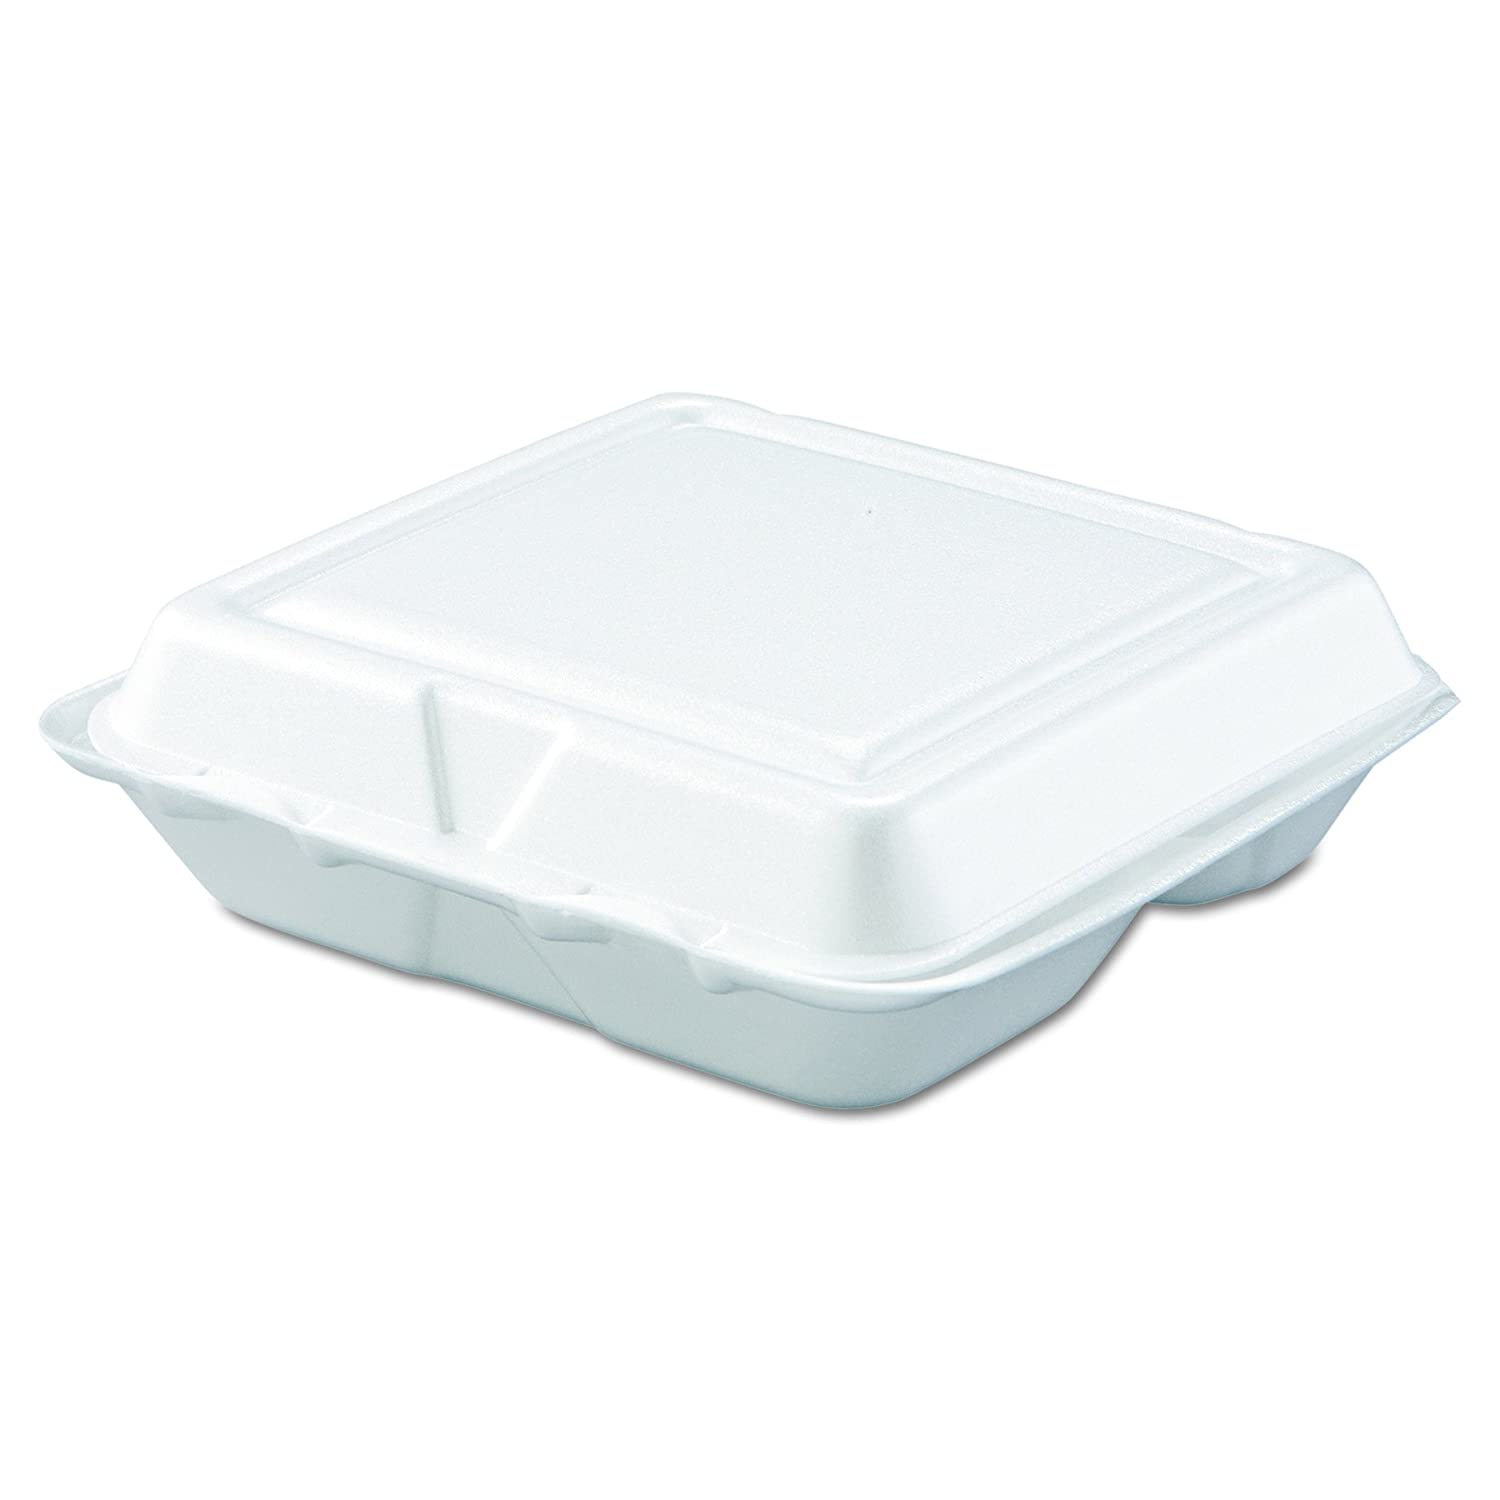 Dart 80HT3R Carryout Food Container, Foam, 3-Comp, White, 8 x 7 1/2 x 2 3/10 (Case of 200)